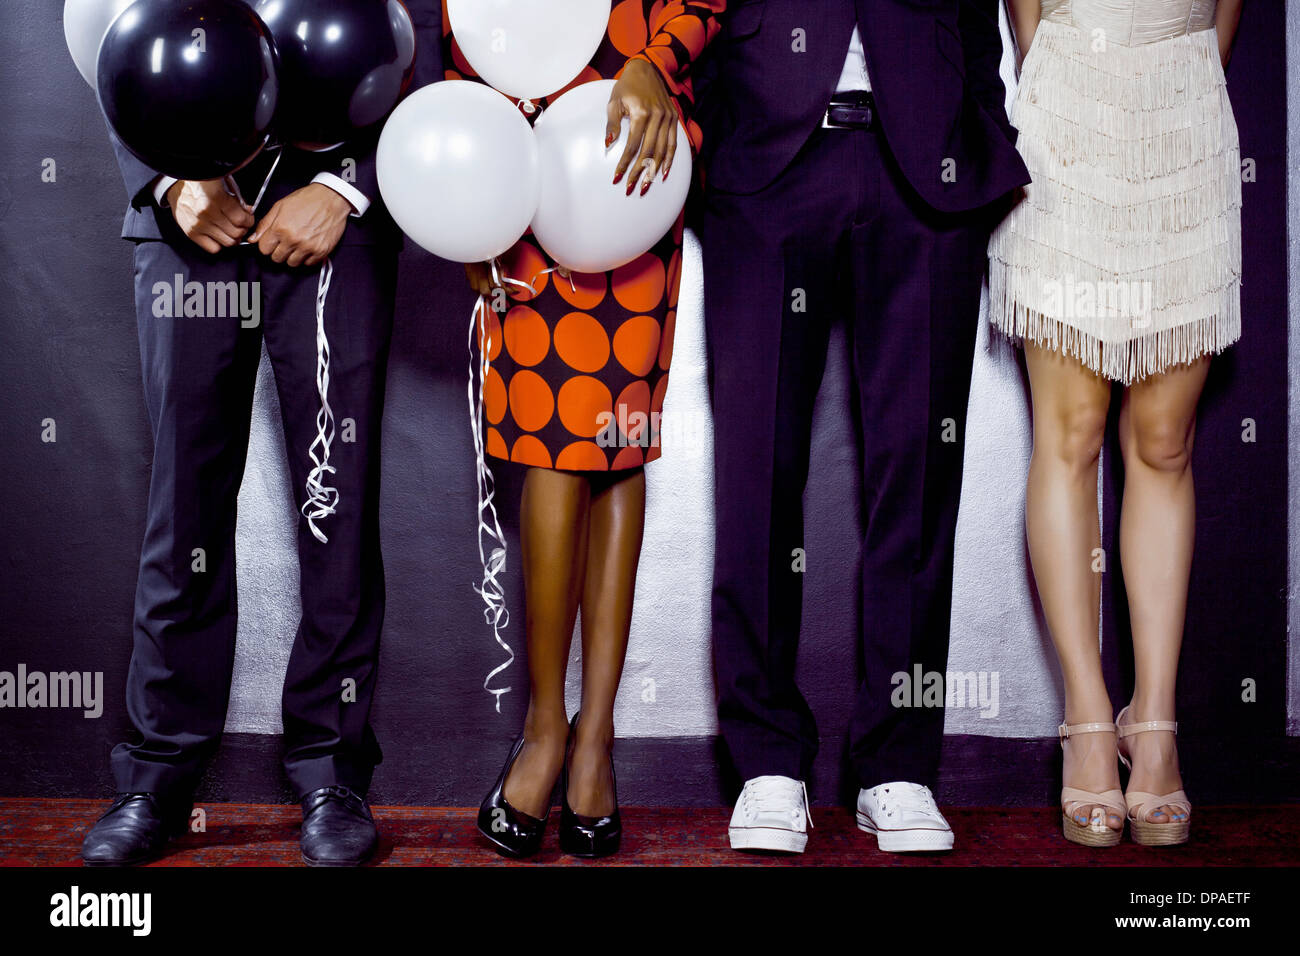 Waist down shot of group of friends with balloons - Stock Image